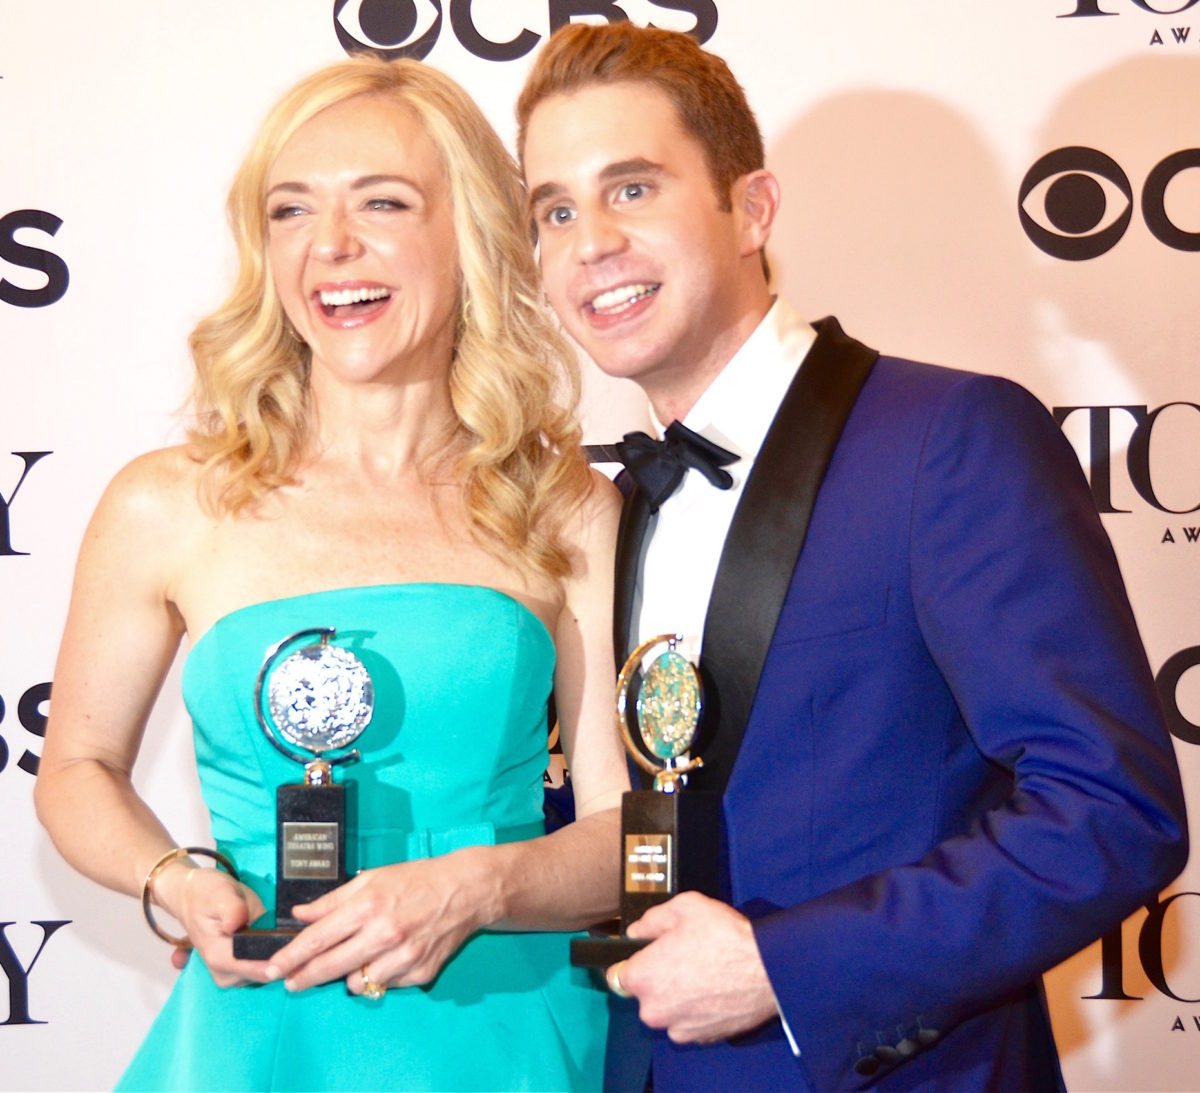 The 2017 Tony Awards